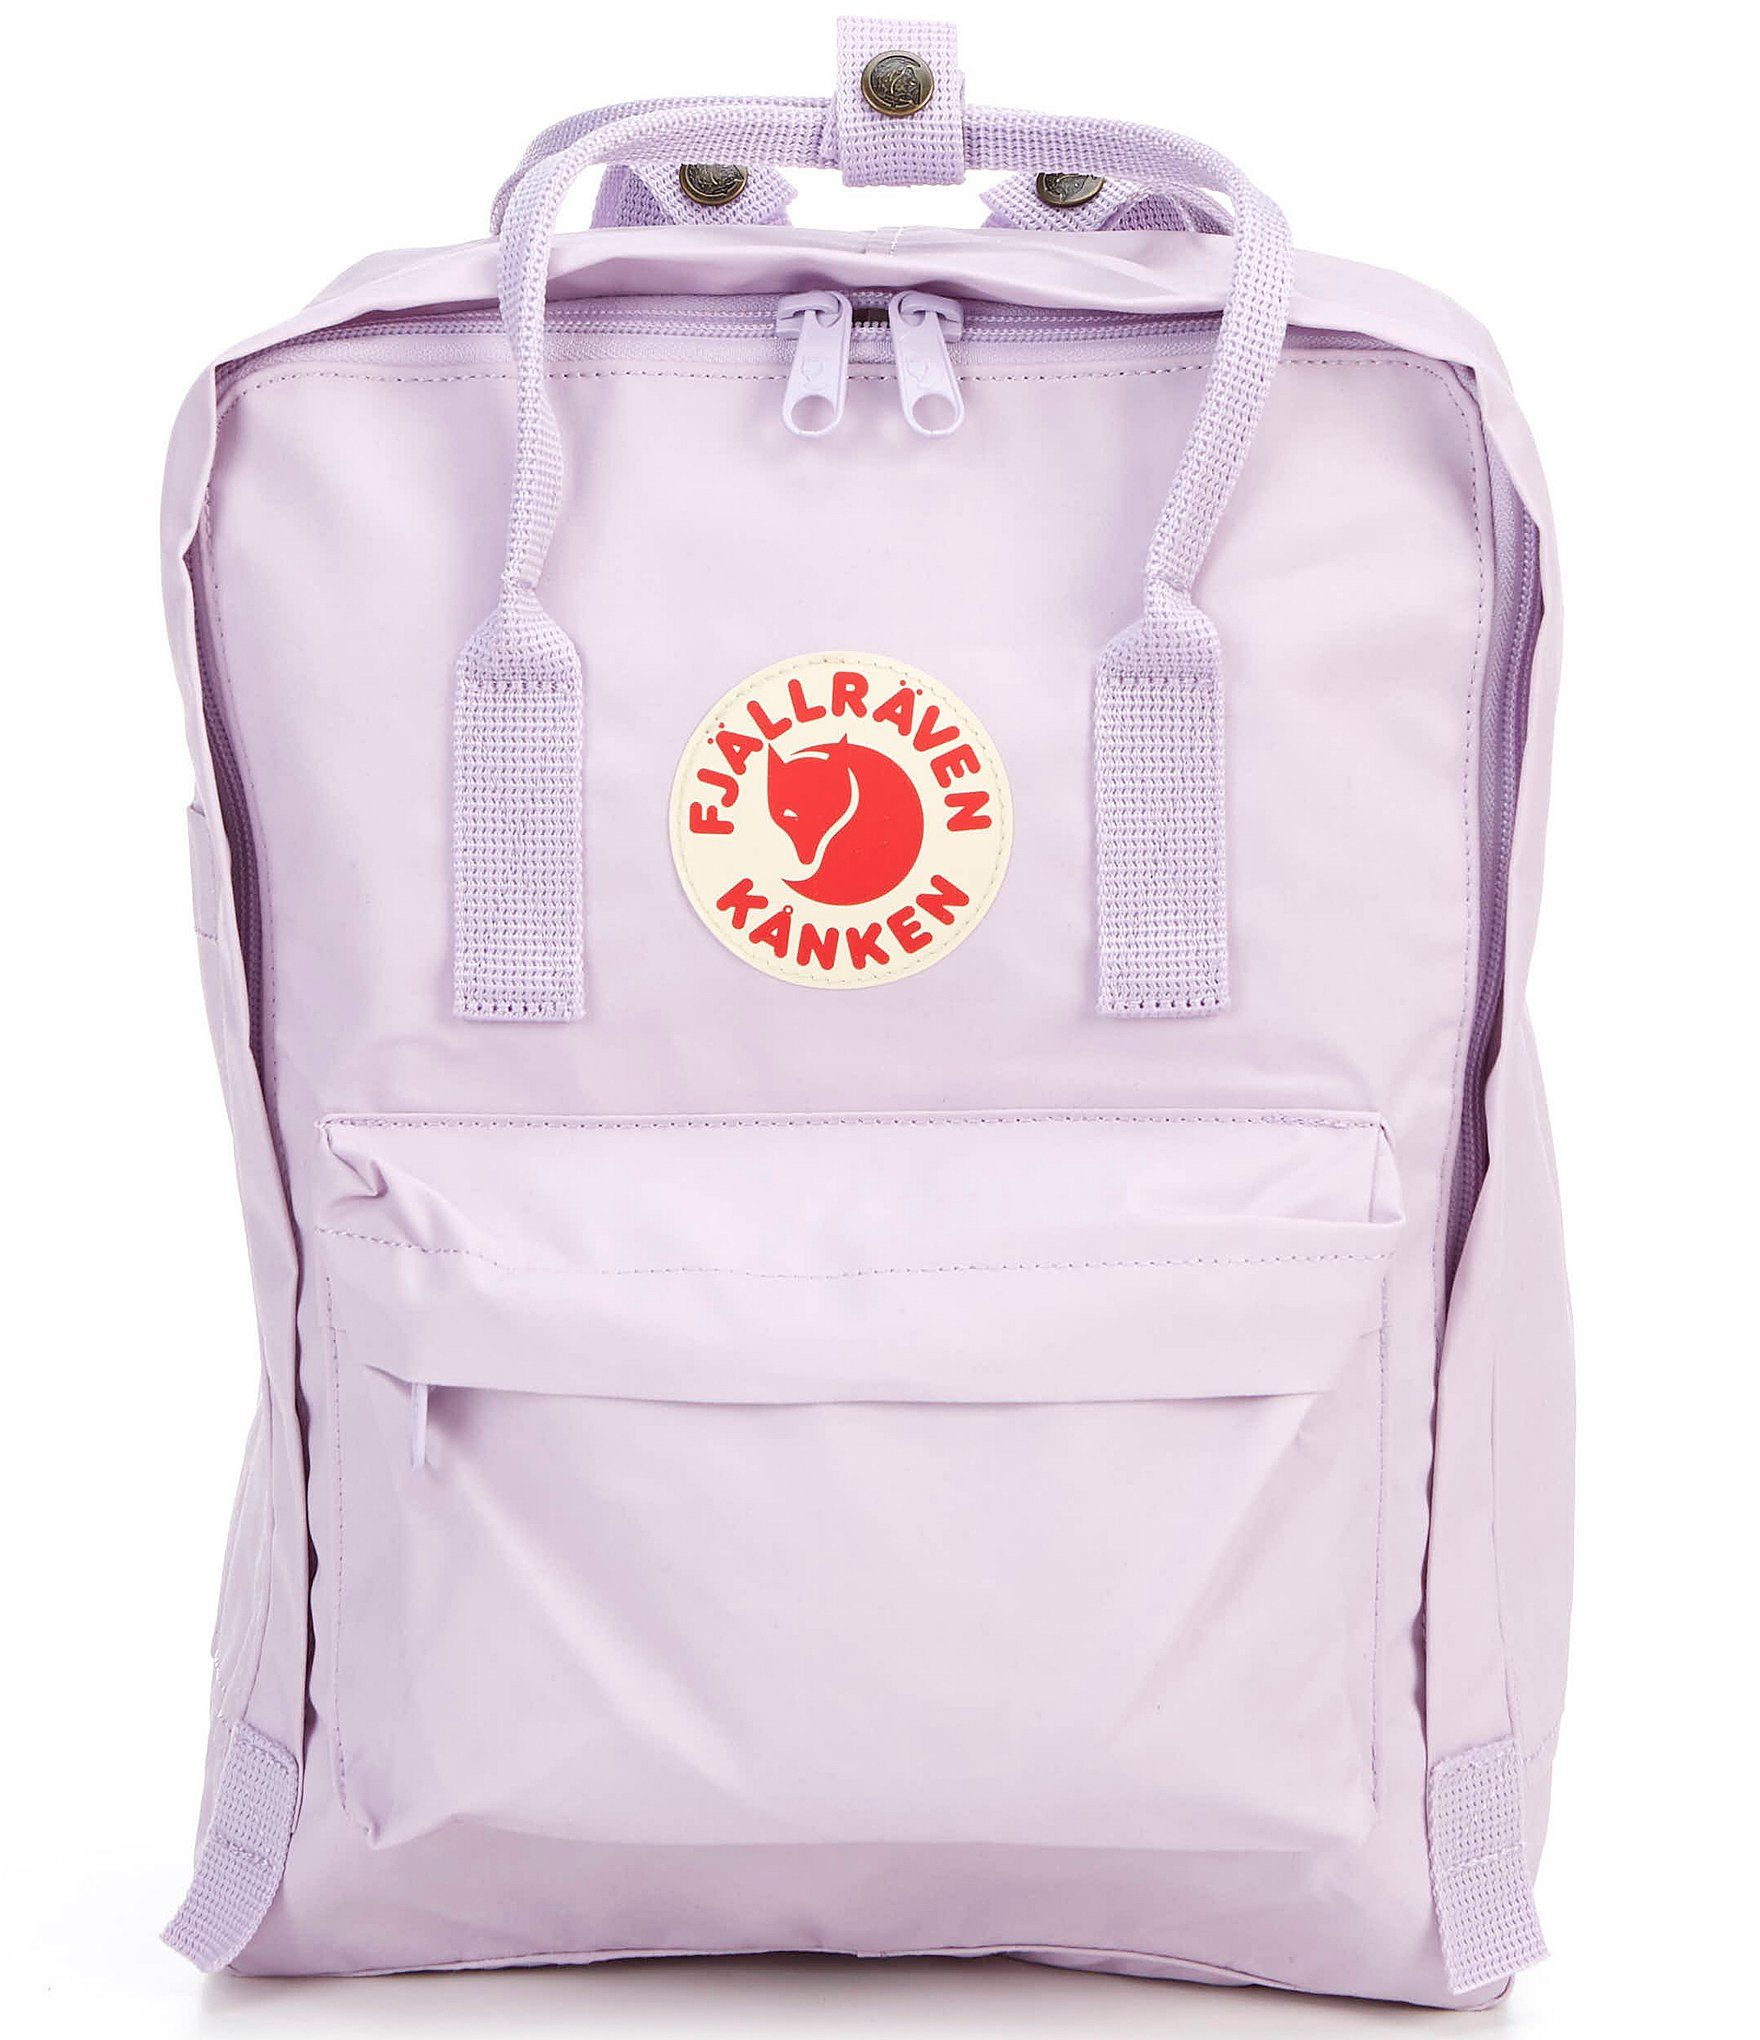 From Fjallraven, the Kanken Water-Resistant Convertible Backpack features:Durable water-resistant cotton Vinylon fabricZipper closureRemovable seat padFront and side pocketsZip pocket outsideDouble convertible straps for bag or backpack wearApprox. 14.9